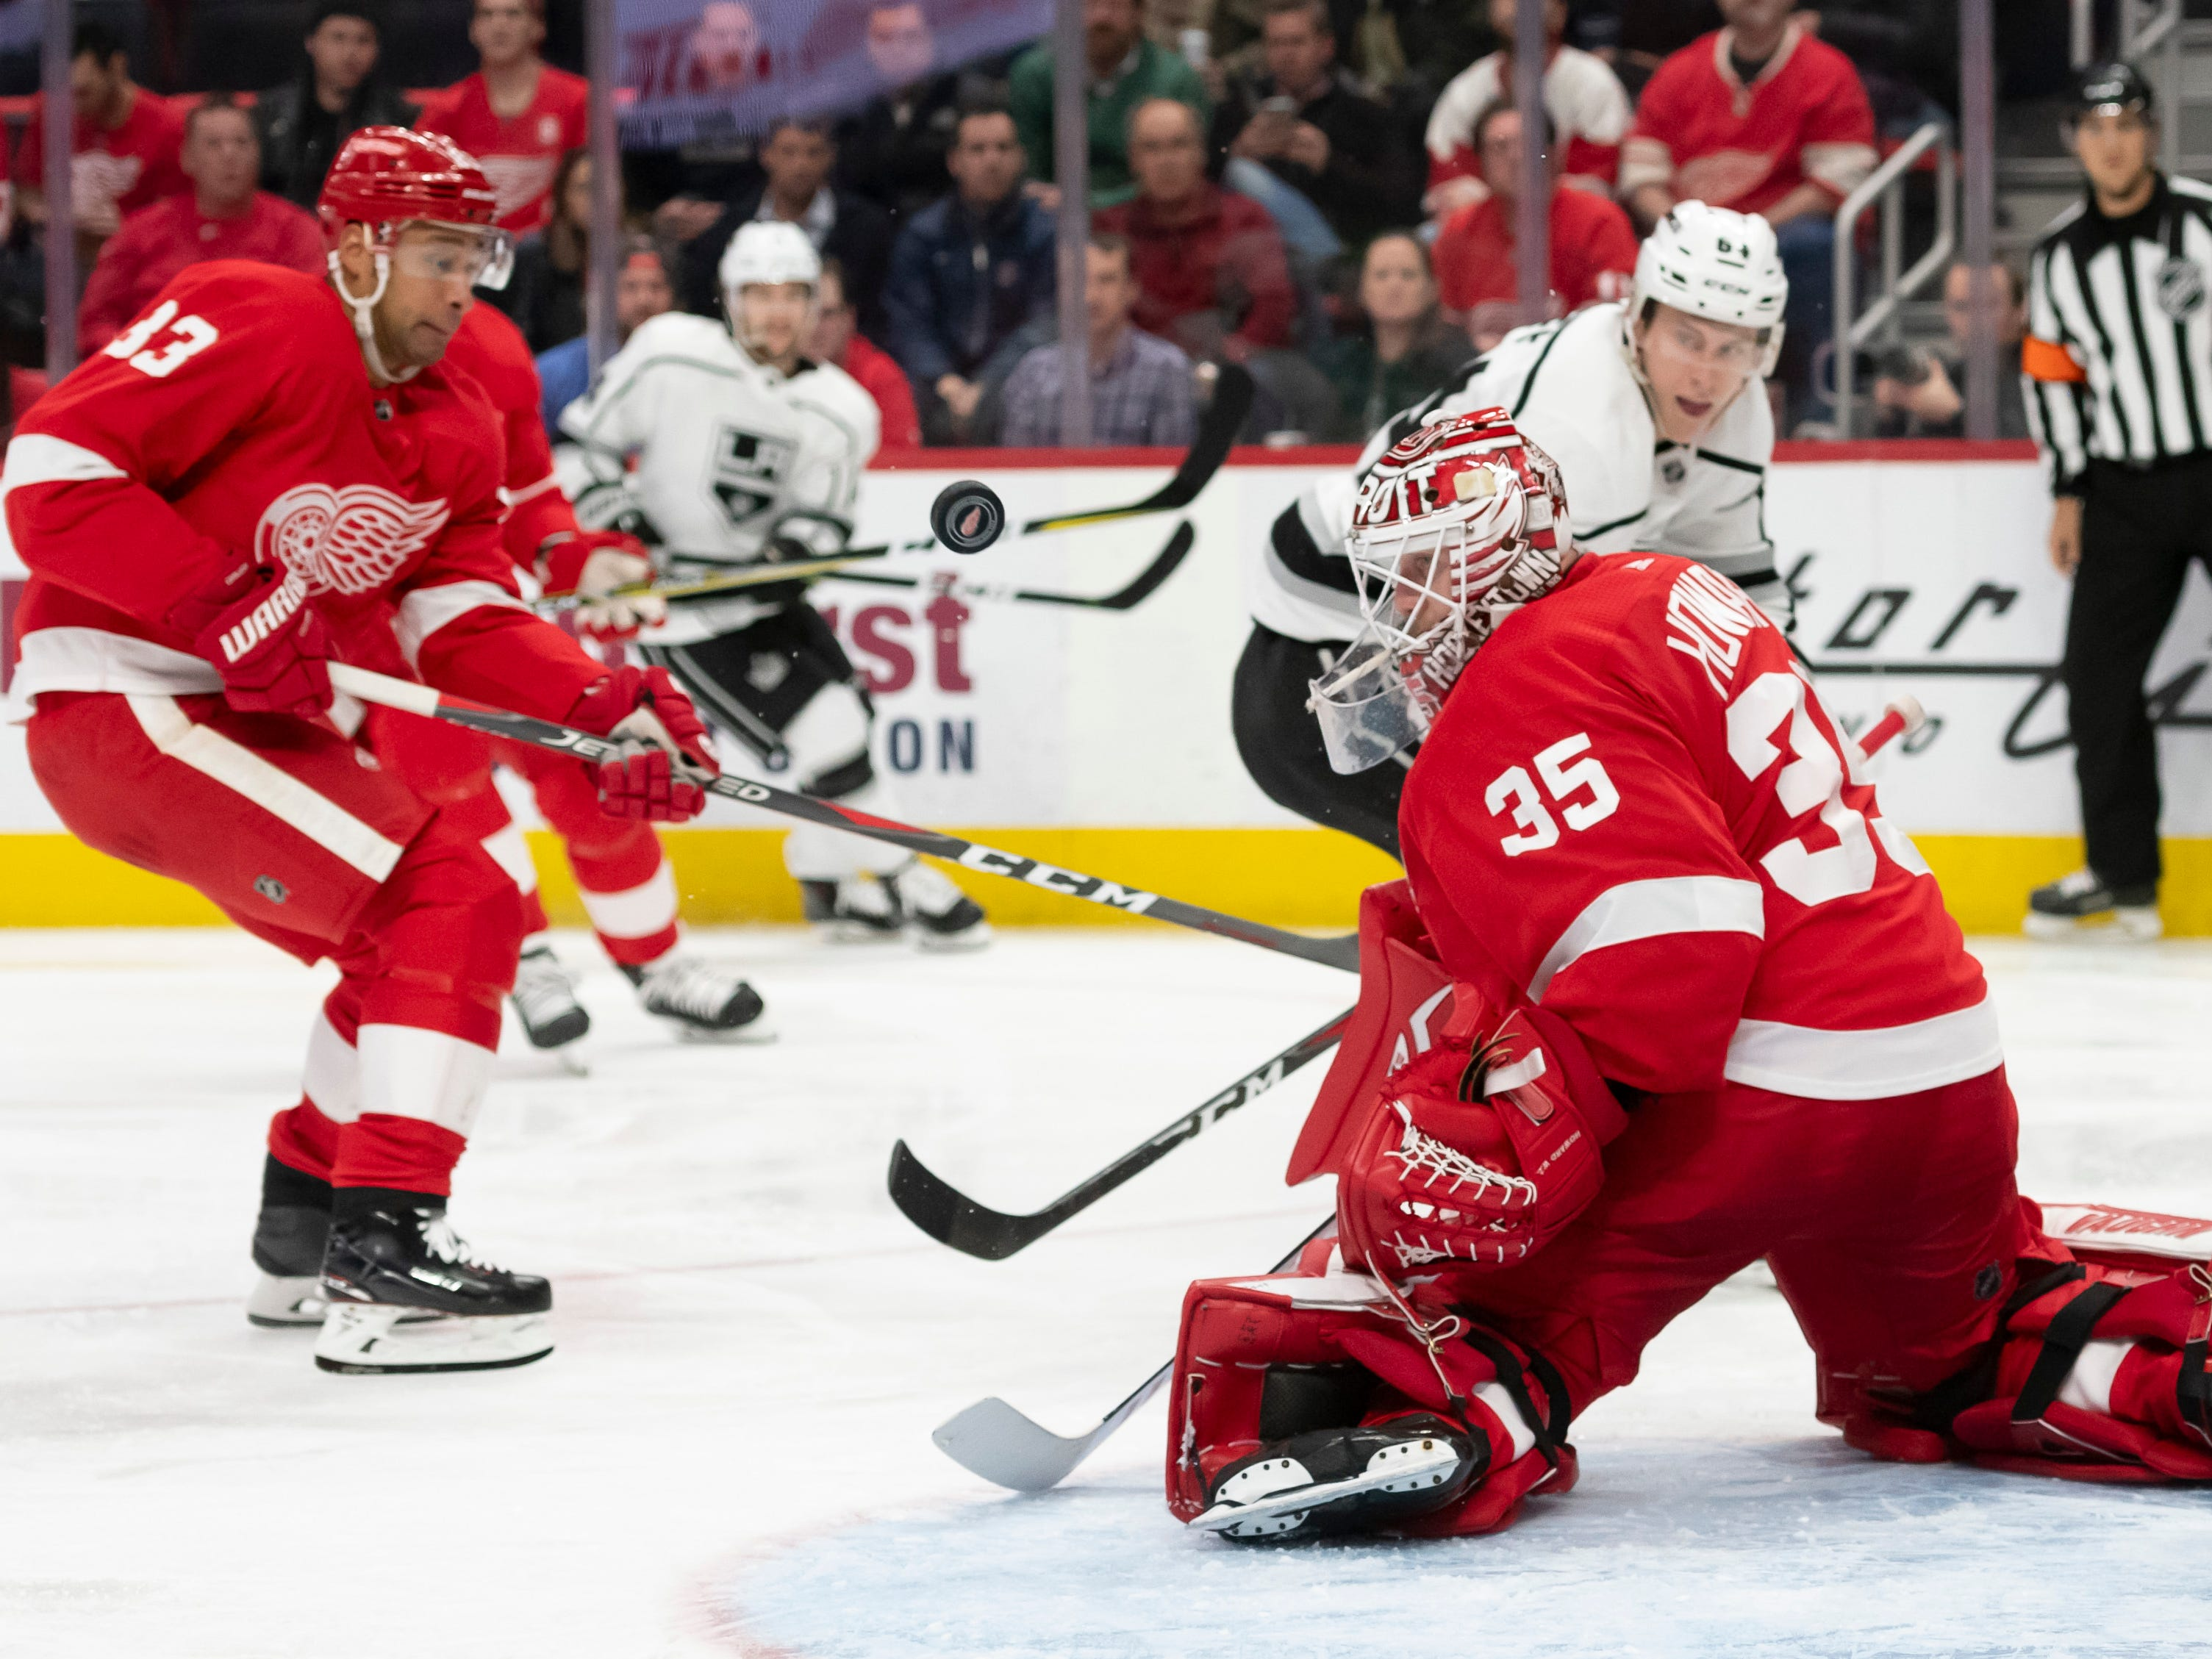 Detroit goaltender Jimmy Howard stops a shot in the second period.